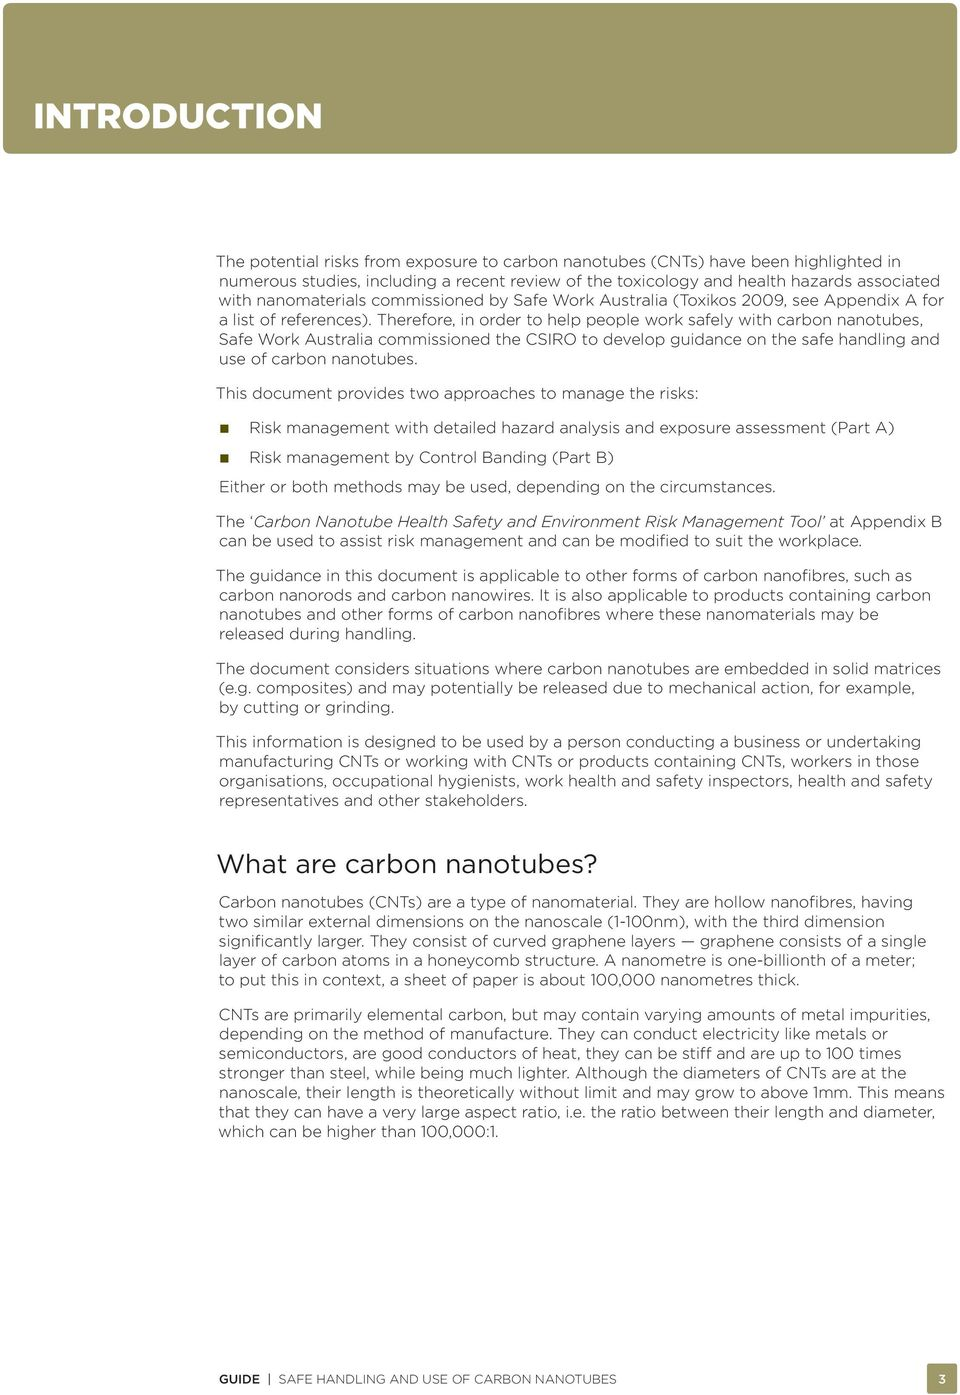 Therefore, in order to help people work safely with carbon nanotubes, Safe Work Australia commissioned the CSIRO to develop guidance on the safe handling and use of carbon nanotubes.